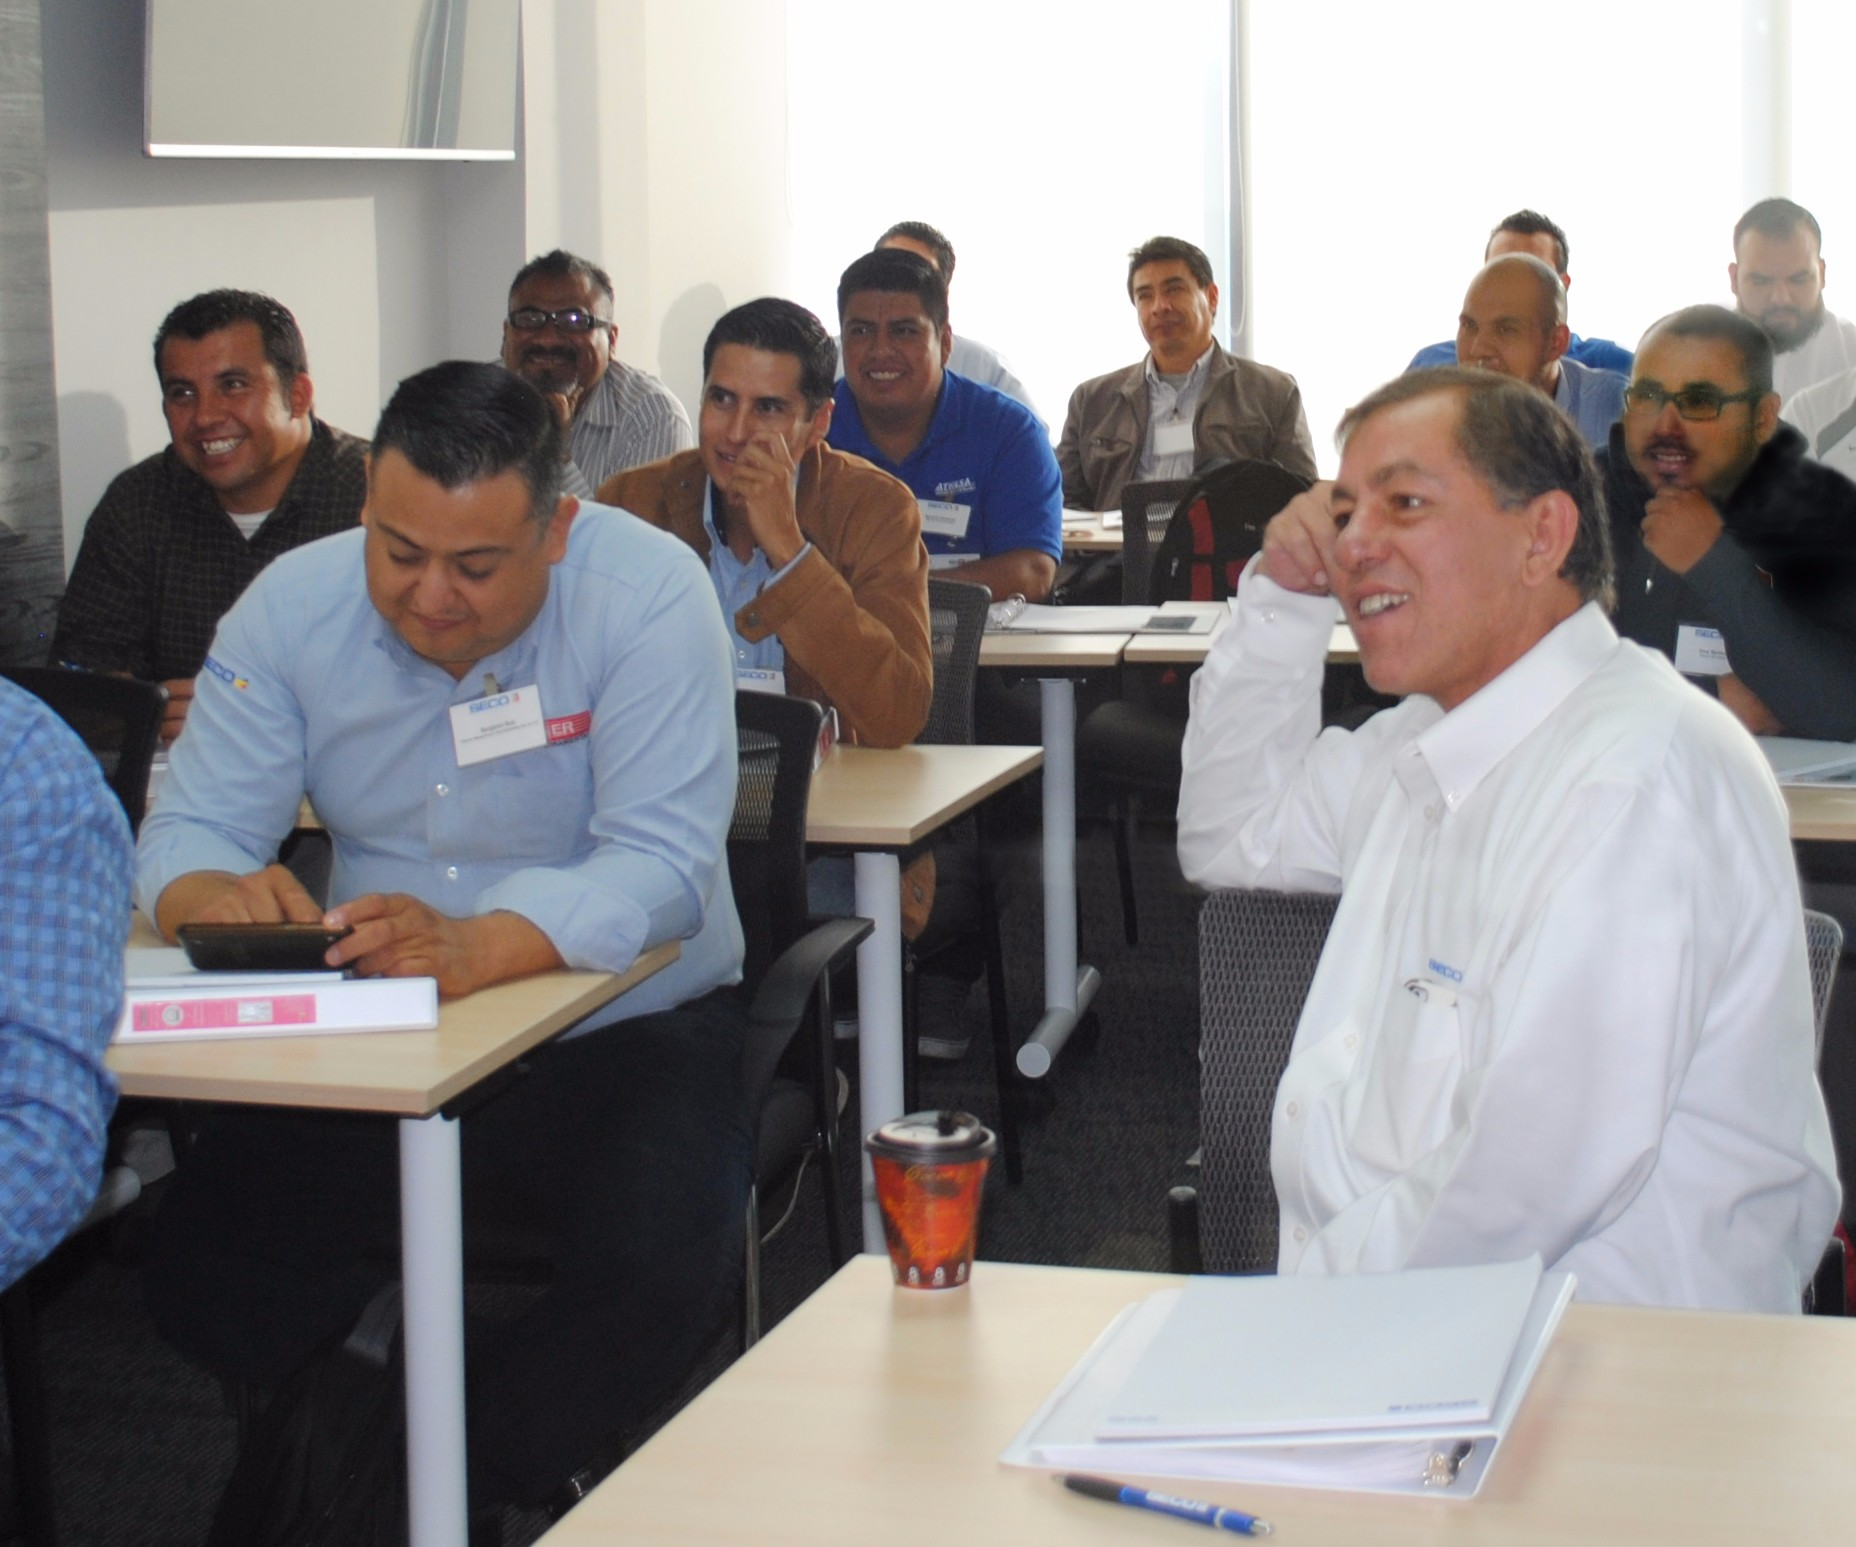 Room of participants in Seco training program